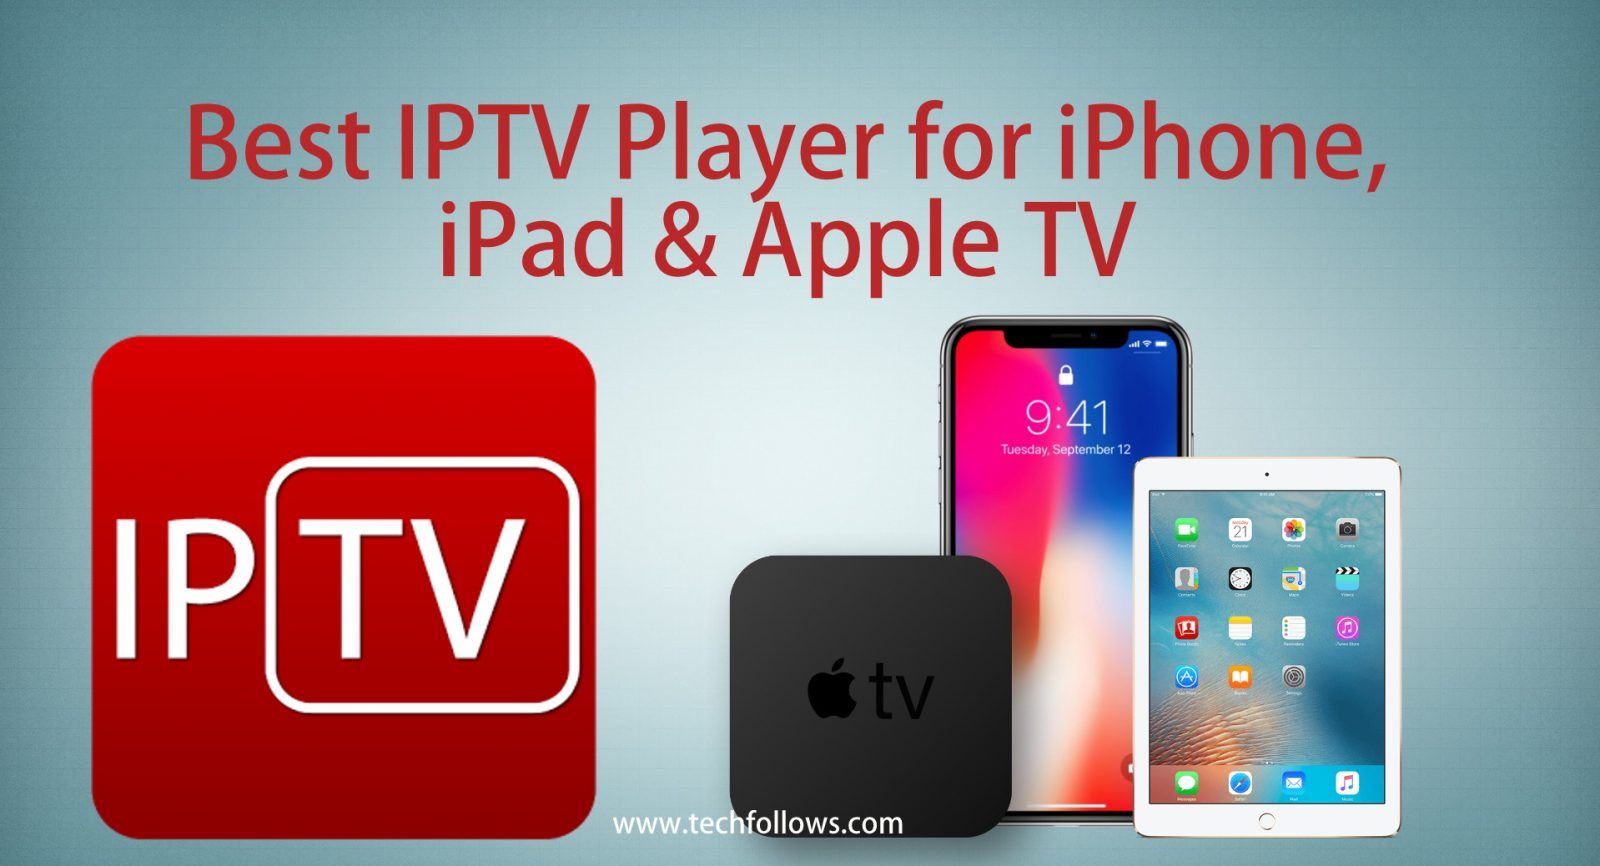 Best IPTV Player for iPhone, iPad and Apple TV in 2019